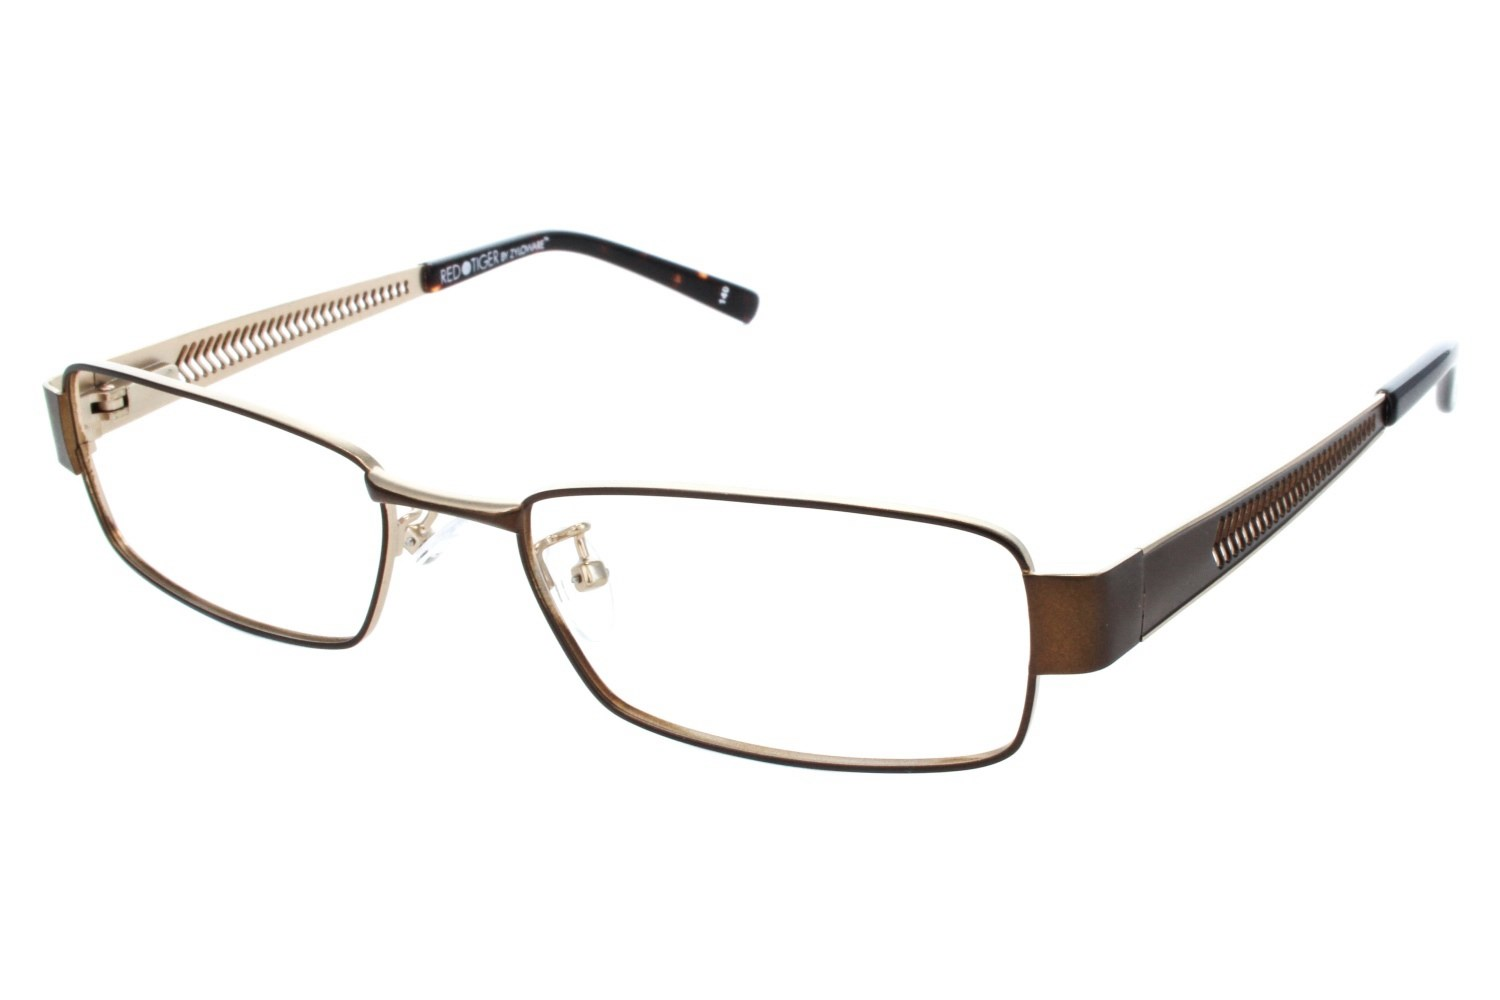 Red Tiger 504m Prescription Eyeglasses